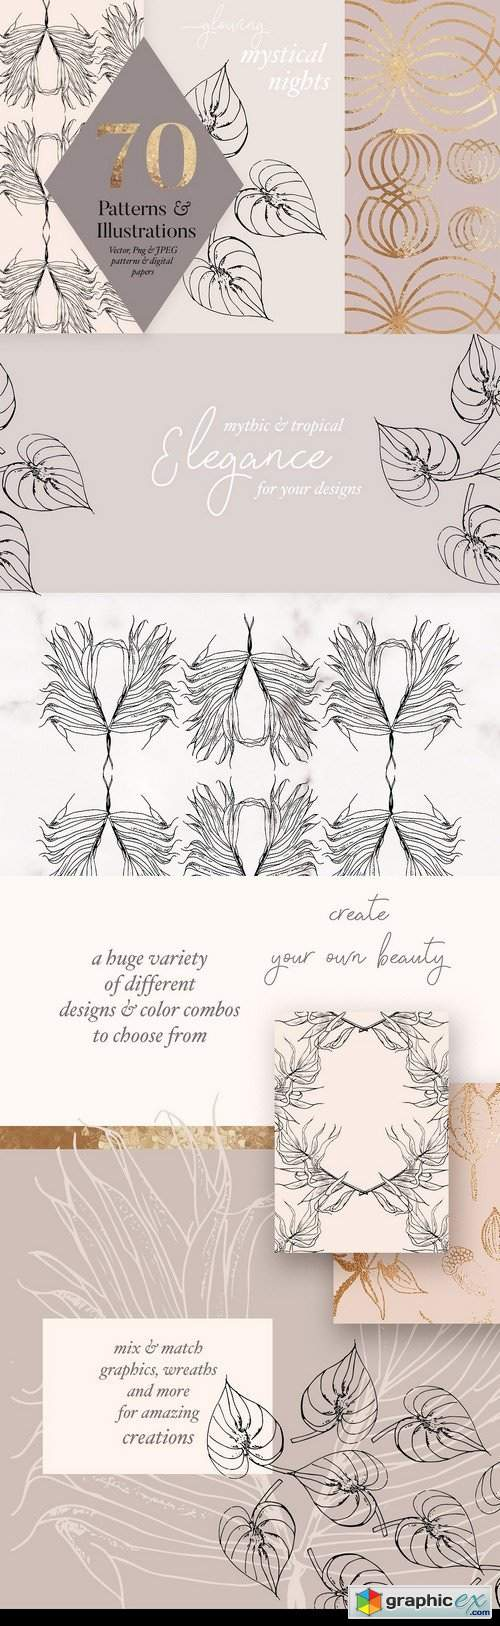 Autumn Gold Patterns & Illustrations